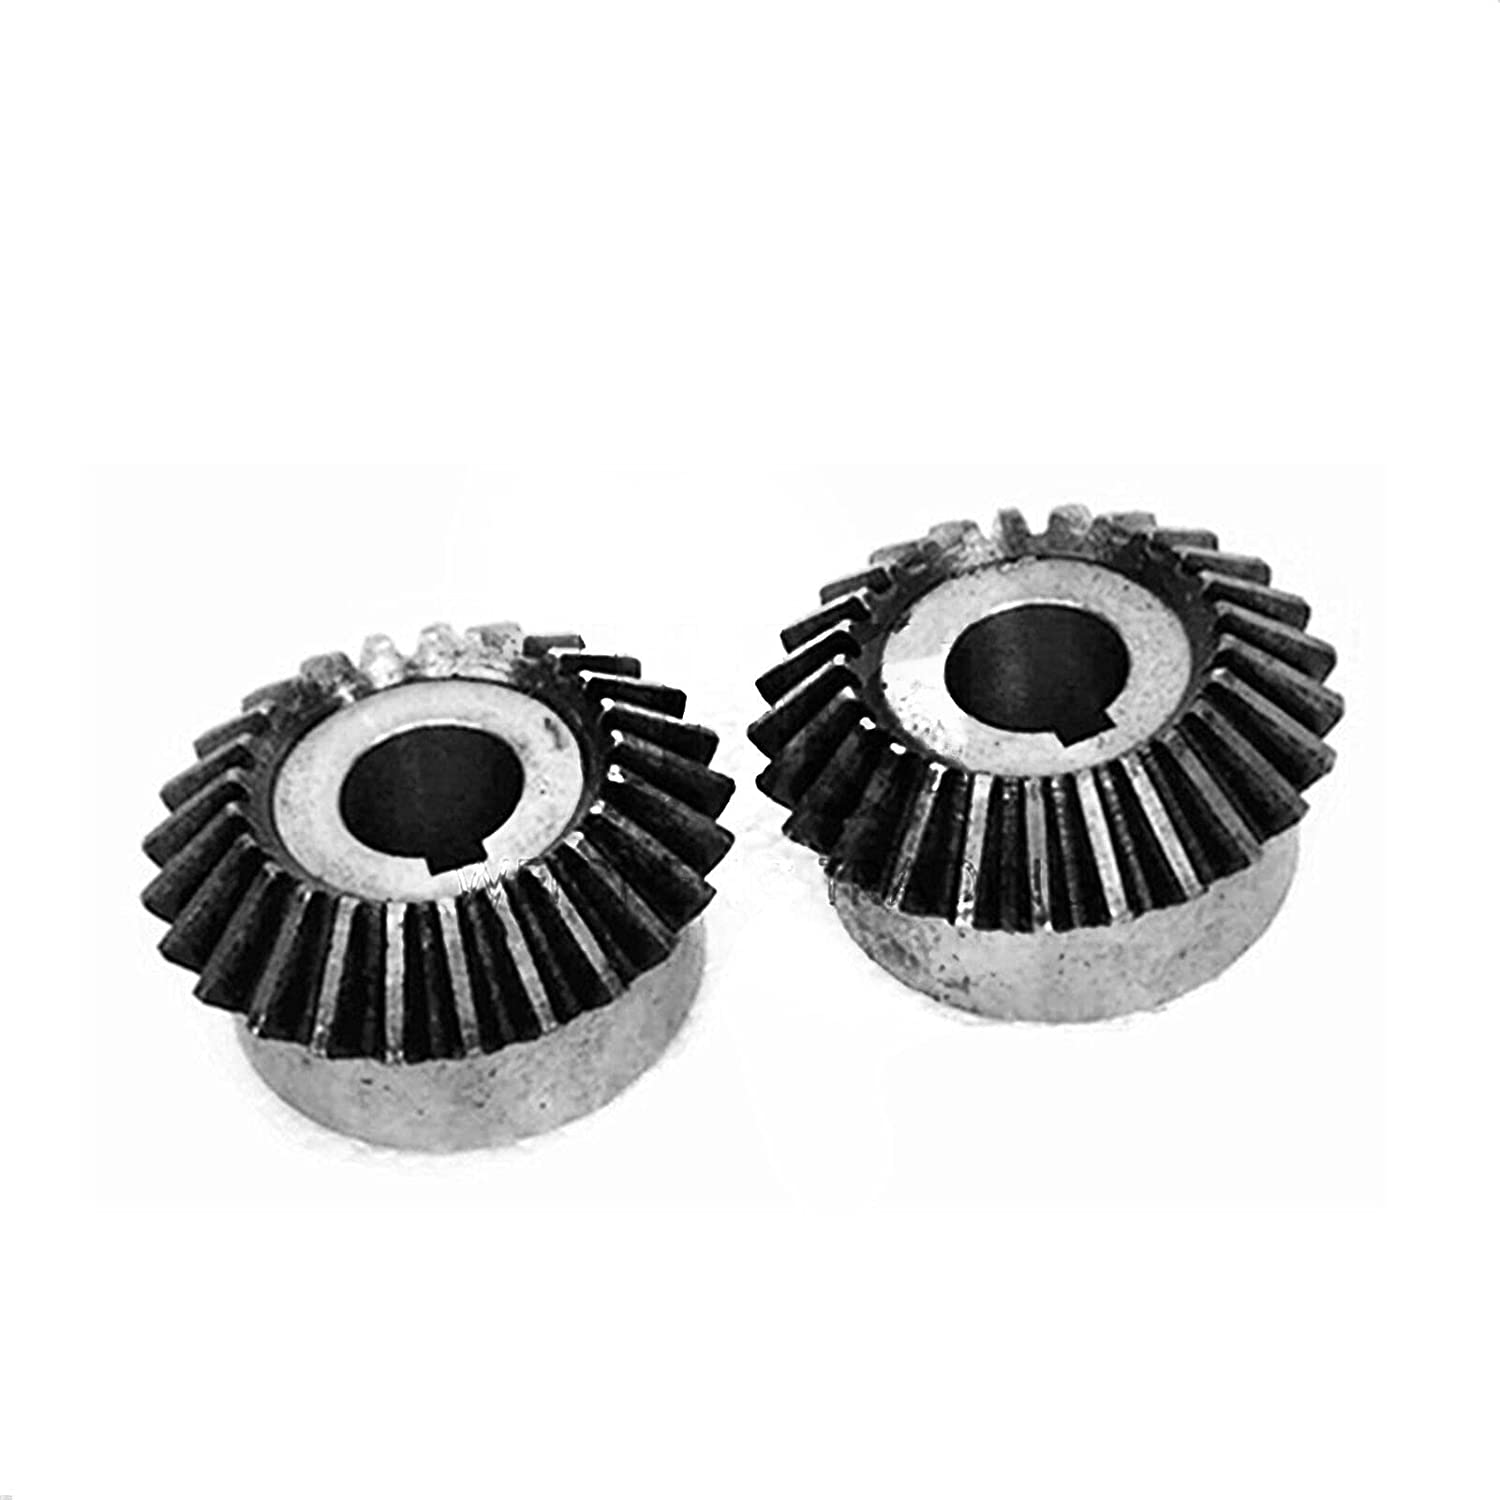 TONGCHAO Tchaogr 25% OFF 2pcs Bevel Gear Inner Limited time for free shipping Modulus 25Teeth 2.5 Hole